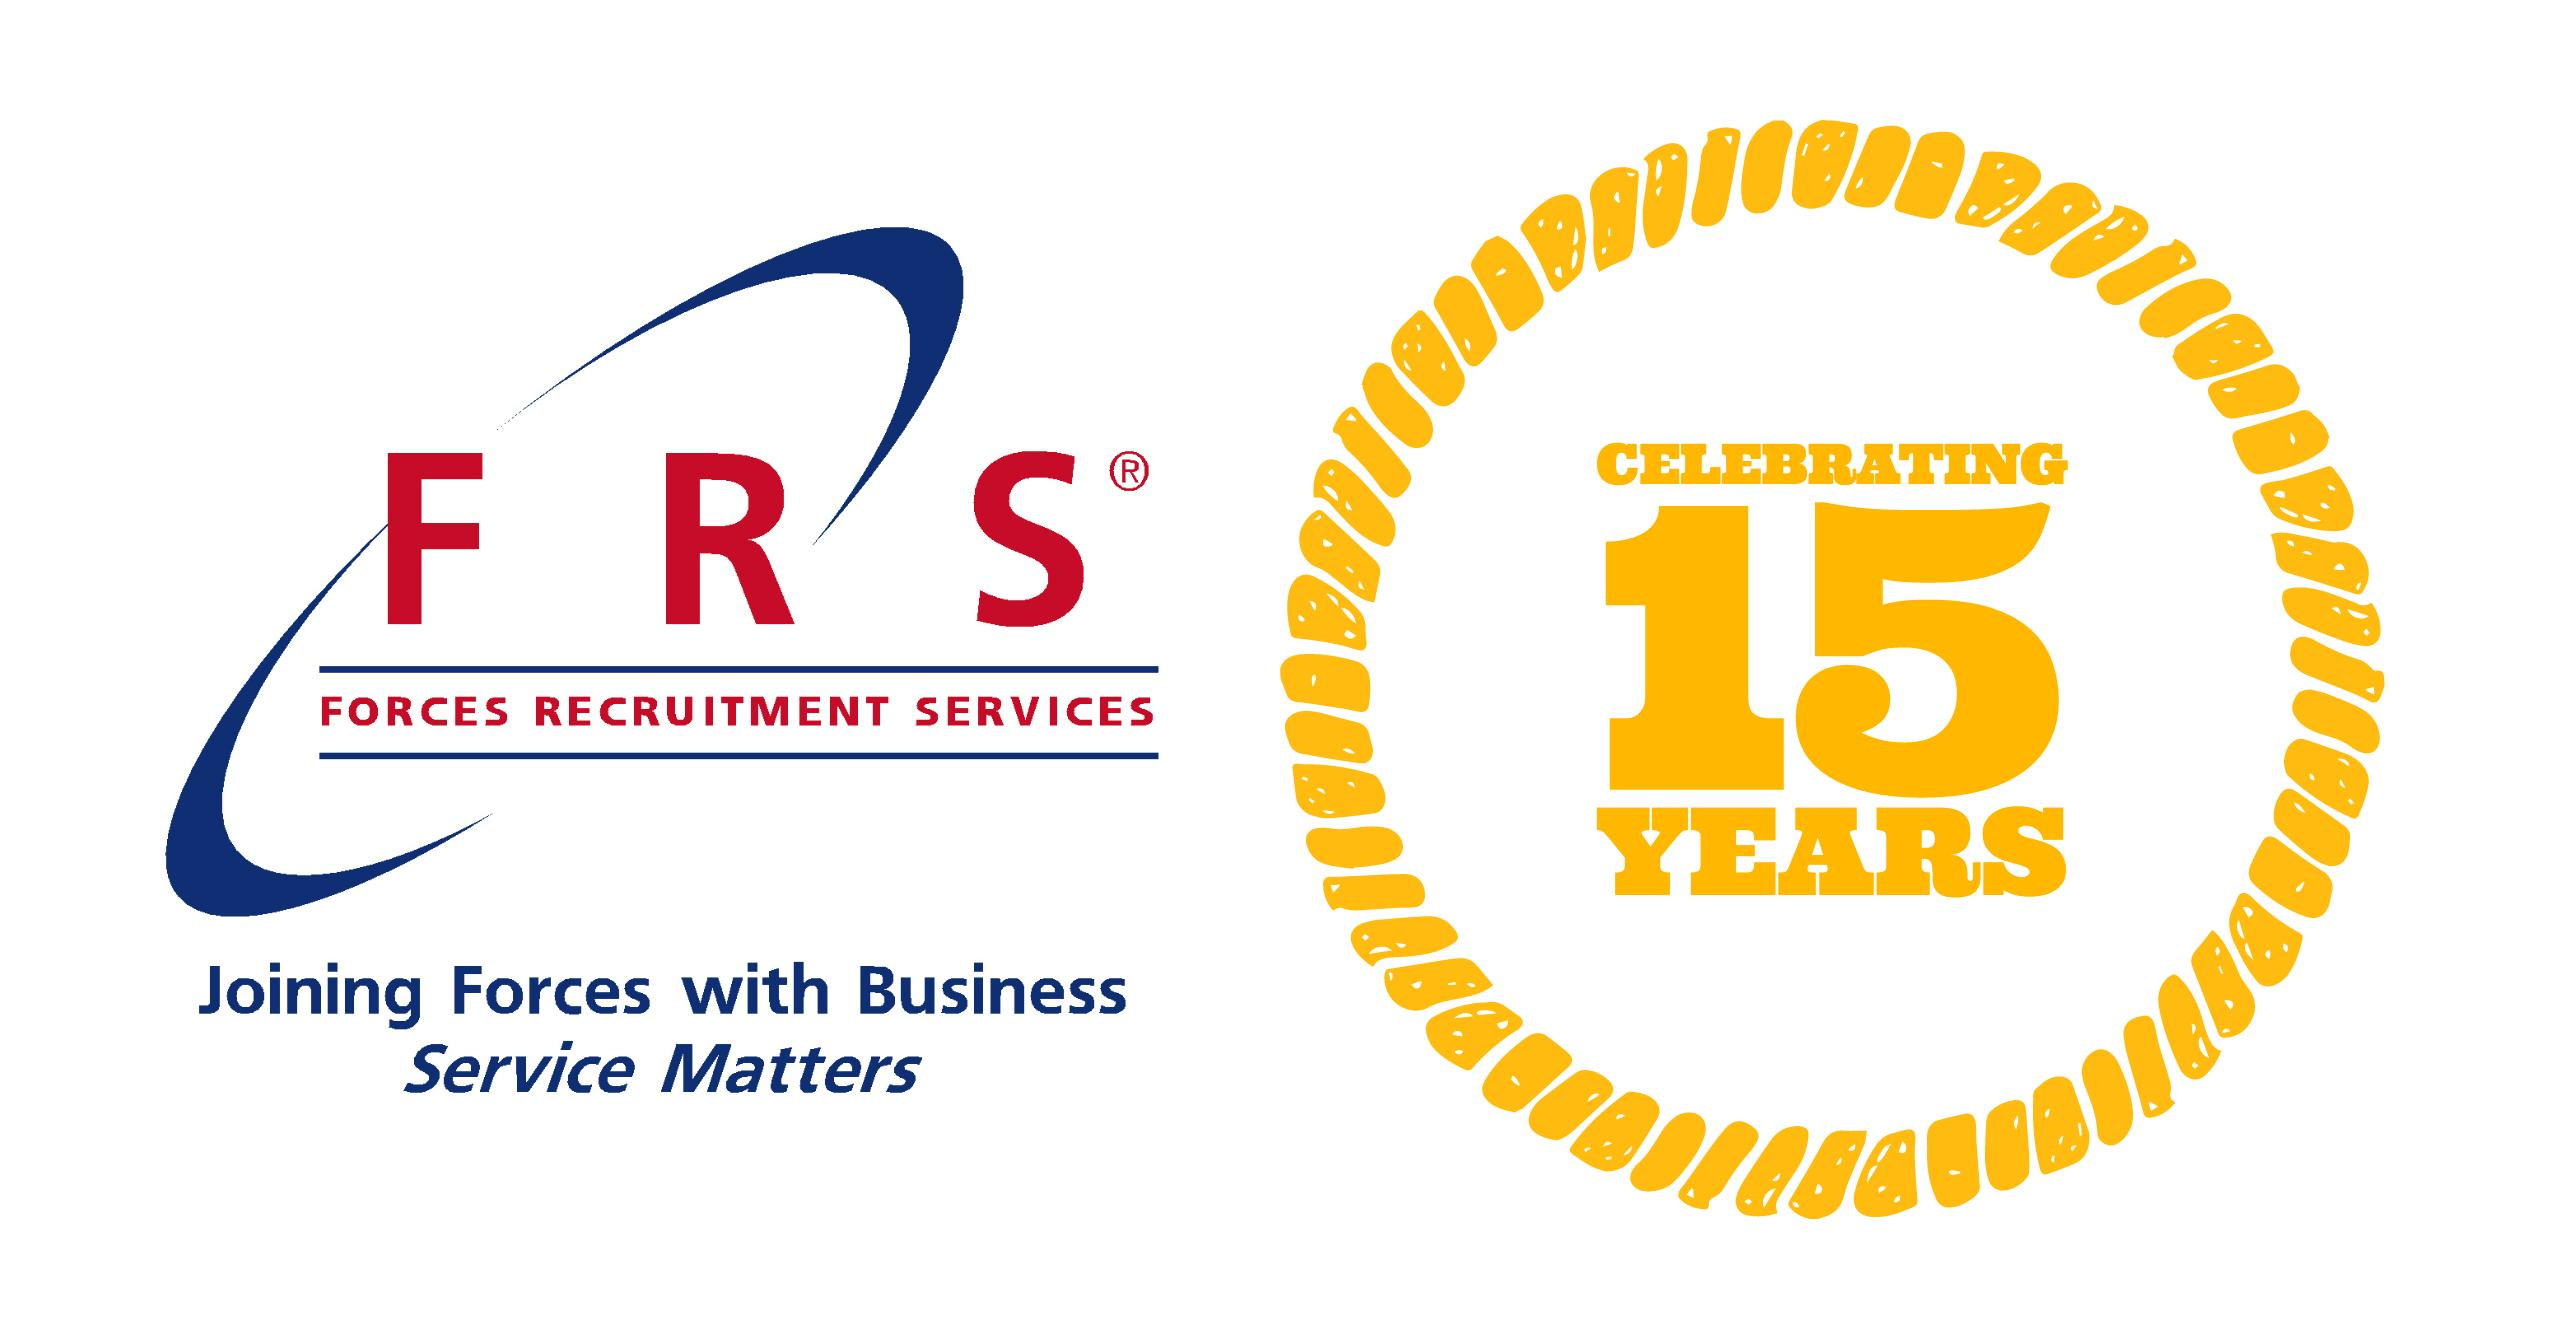 Image for Celebrating 15 years of FRS